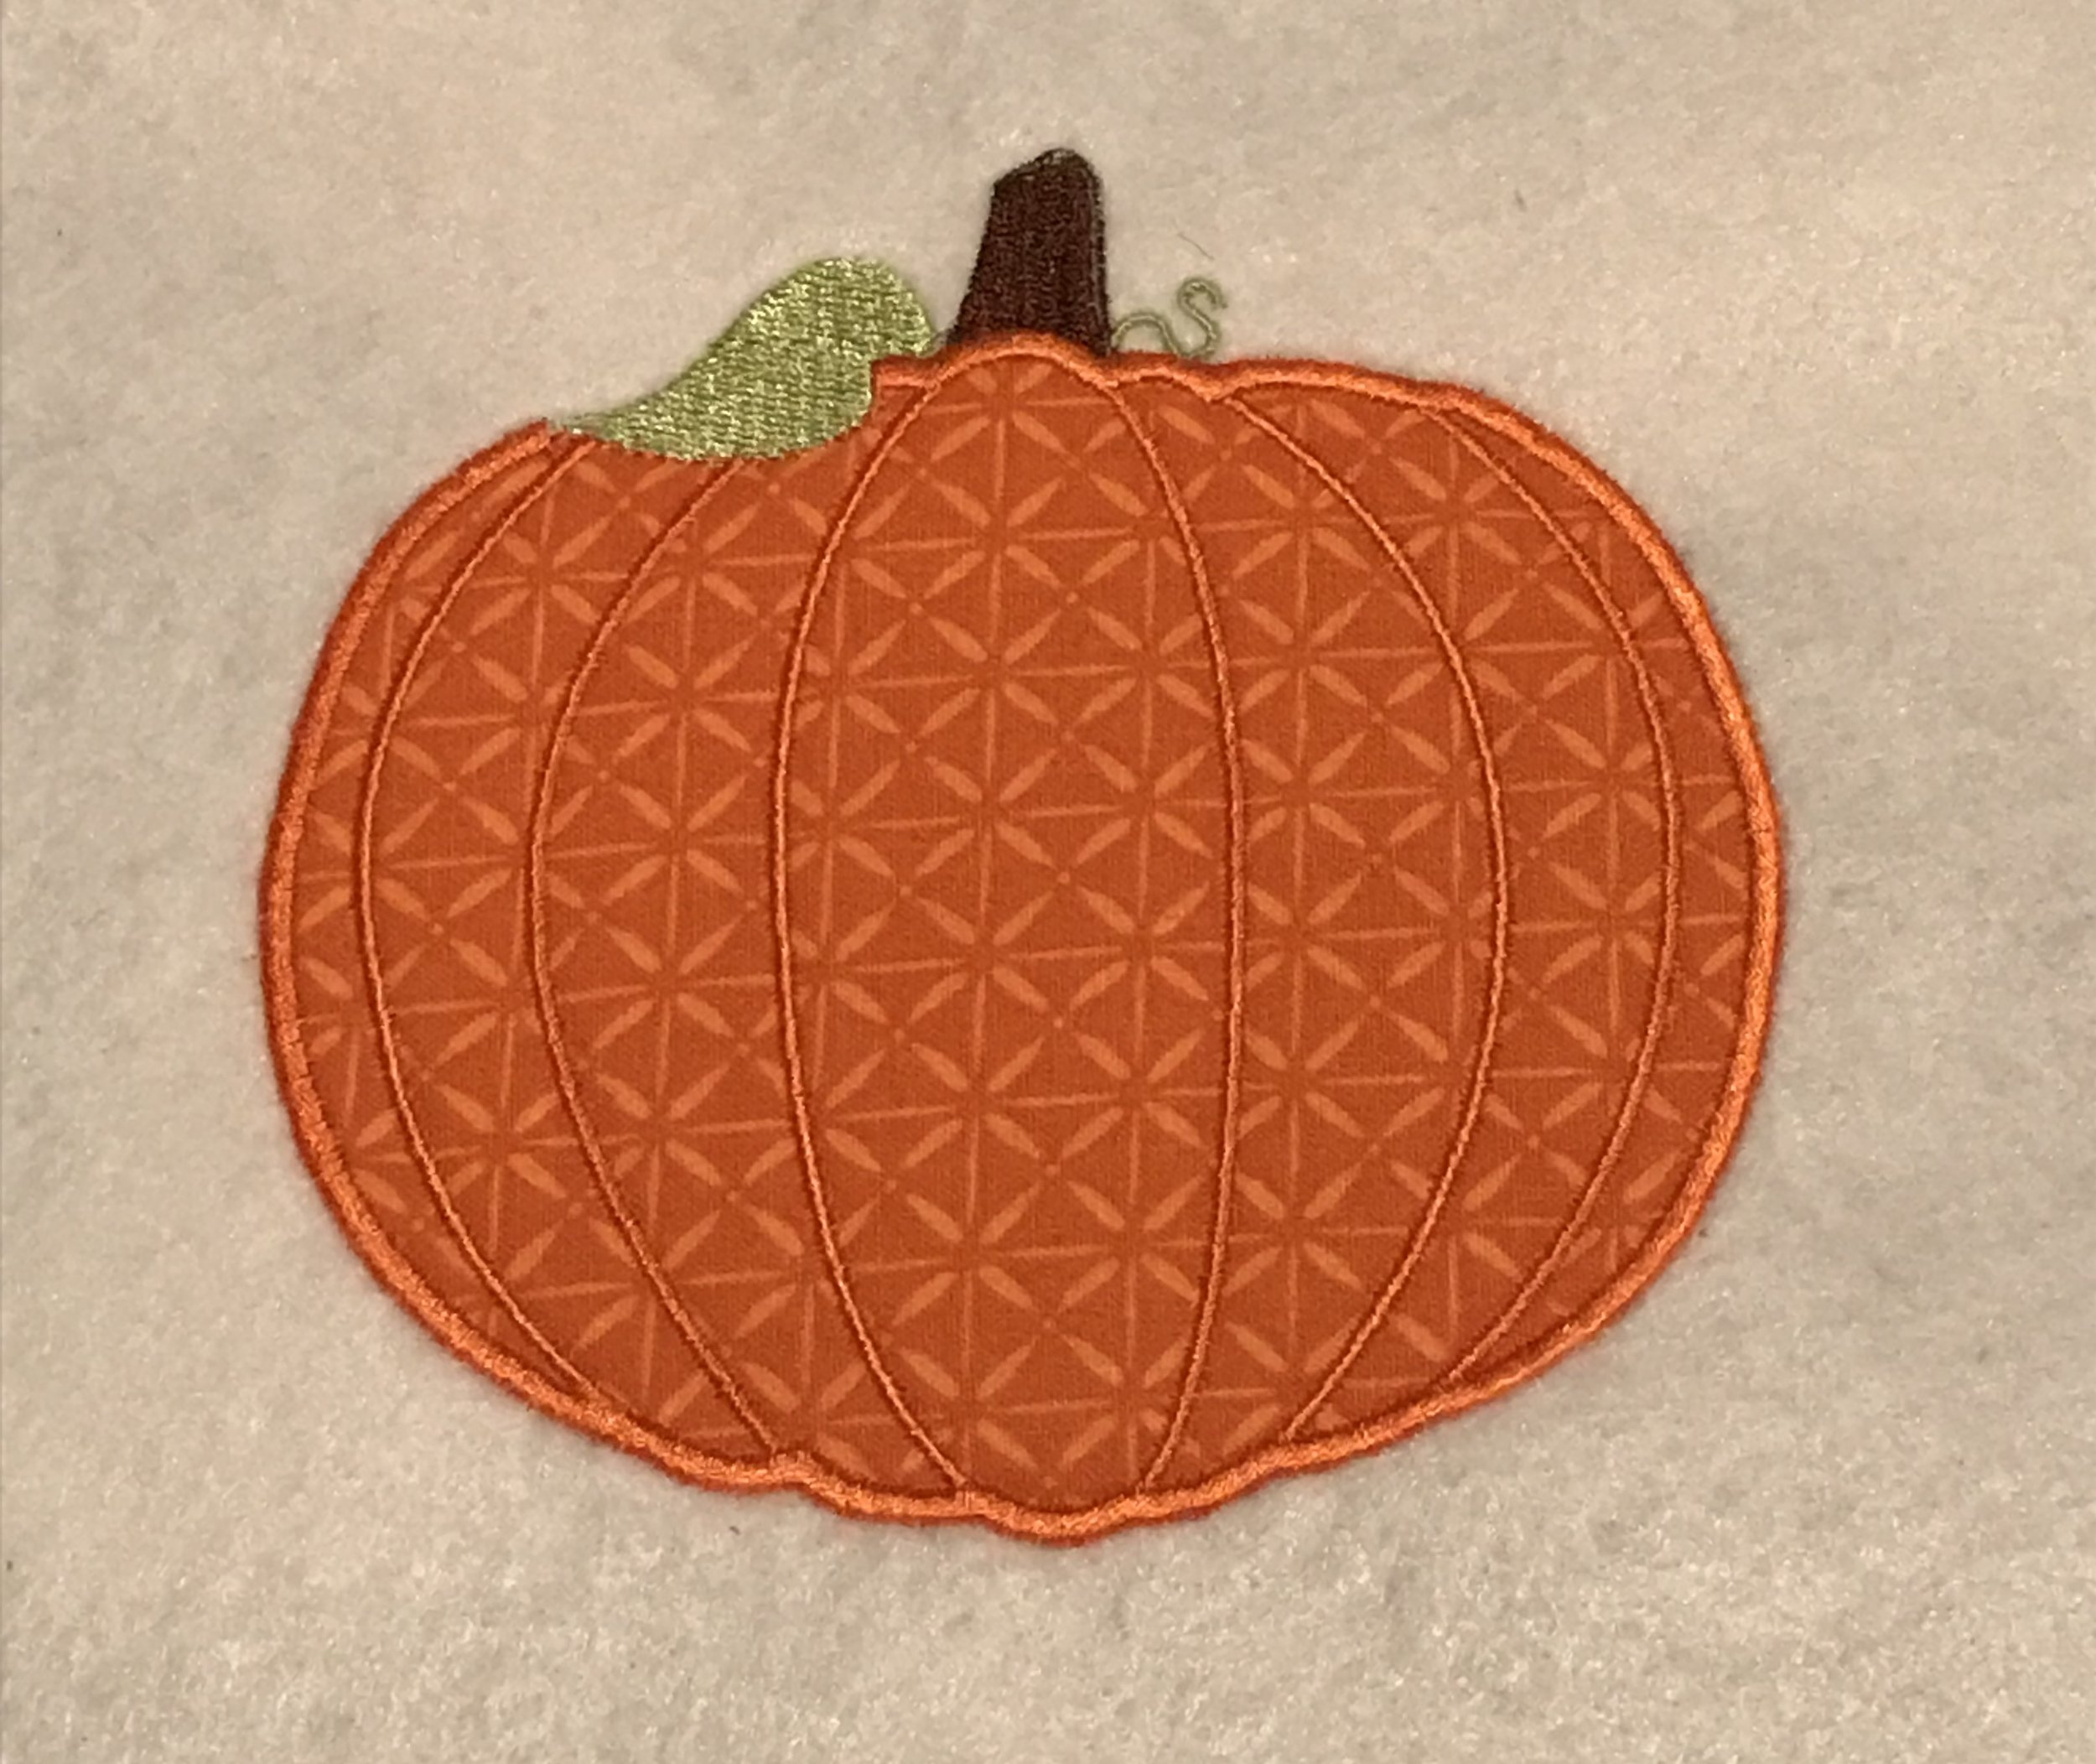 pumpkin for embroidery.jpg